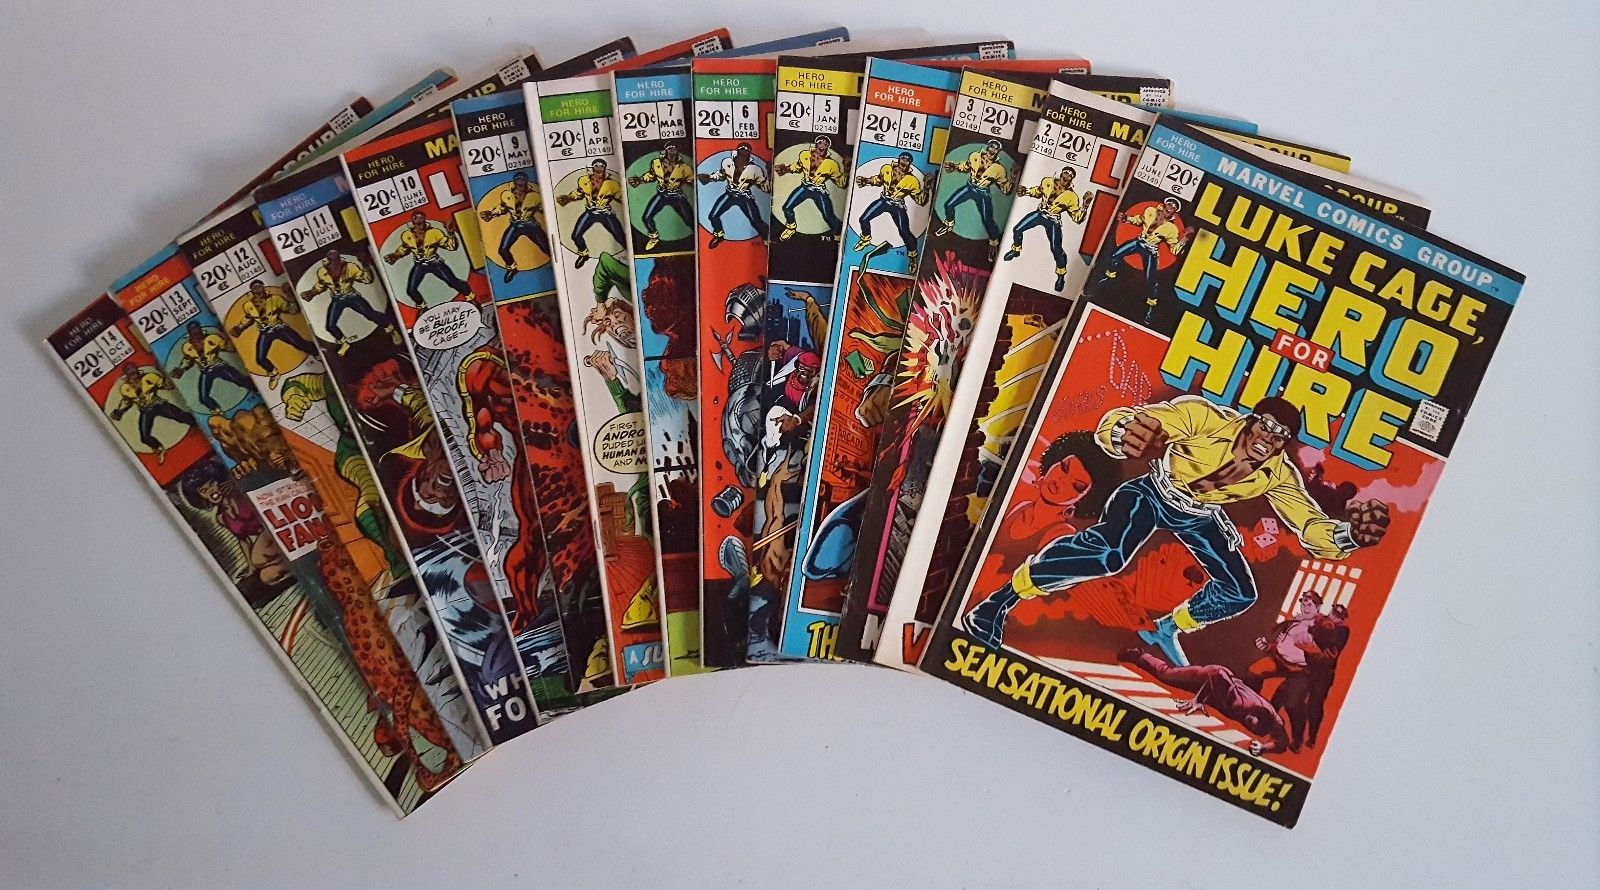 Luke Cage, Hero for Hire #1-14 (1972-1973, Marvel) 14 issue lot.